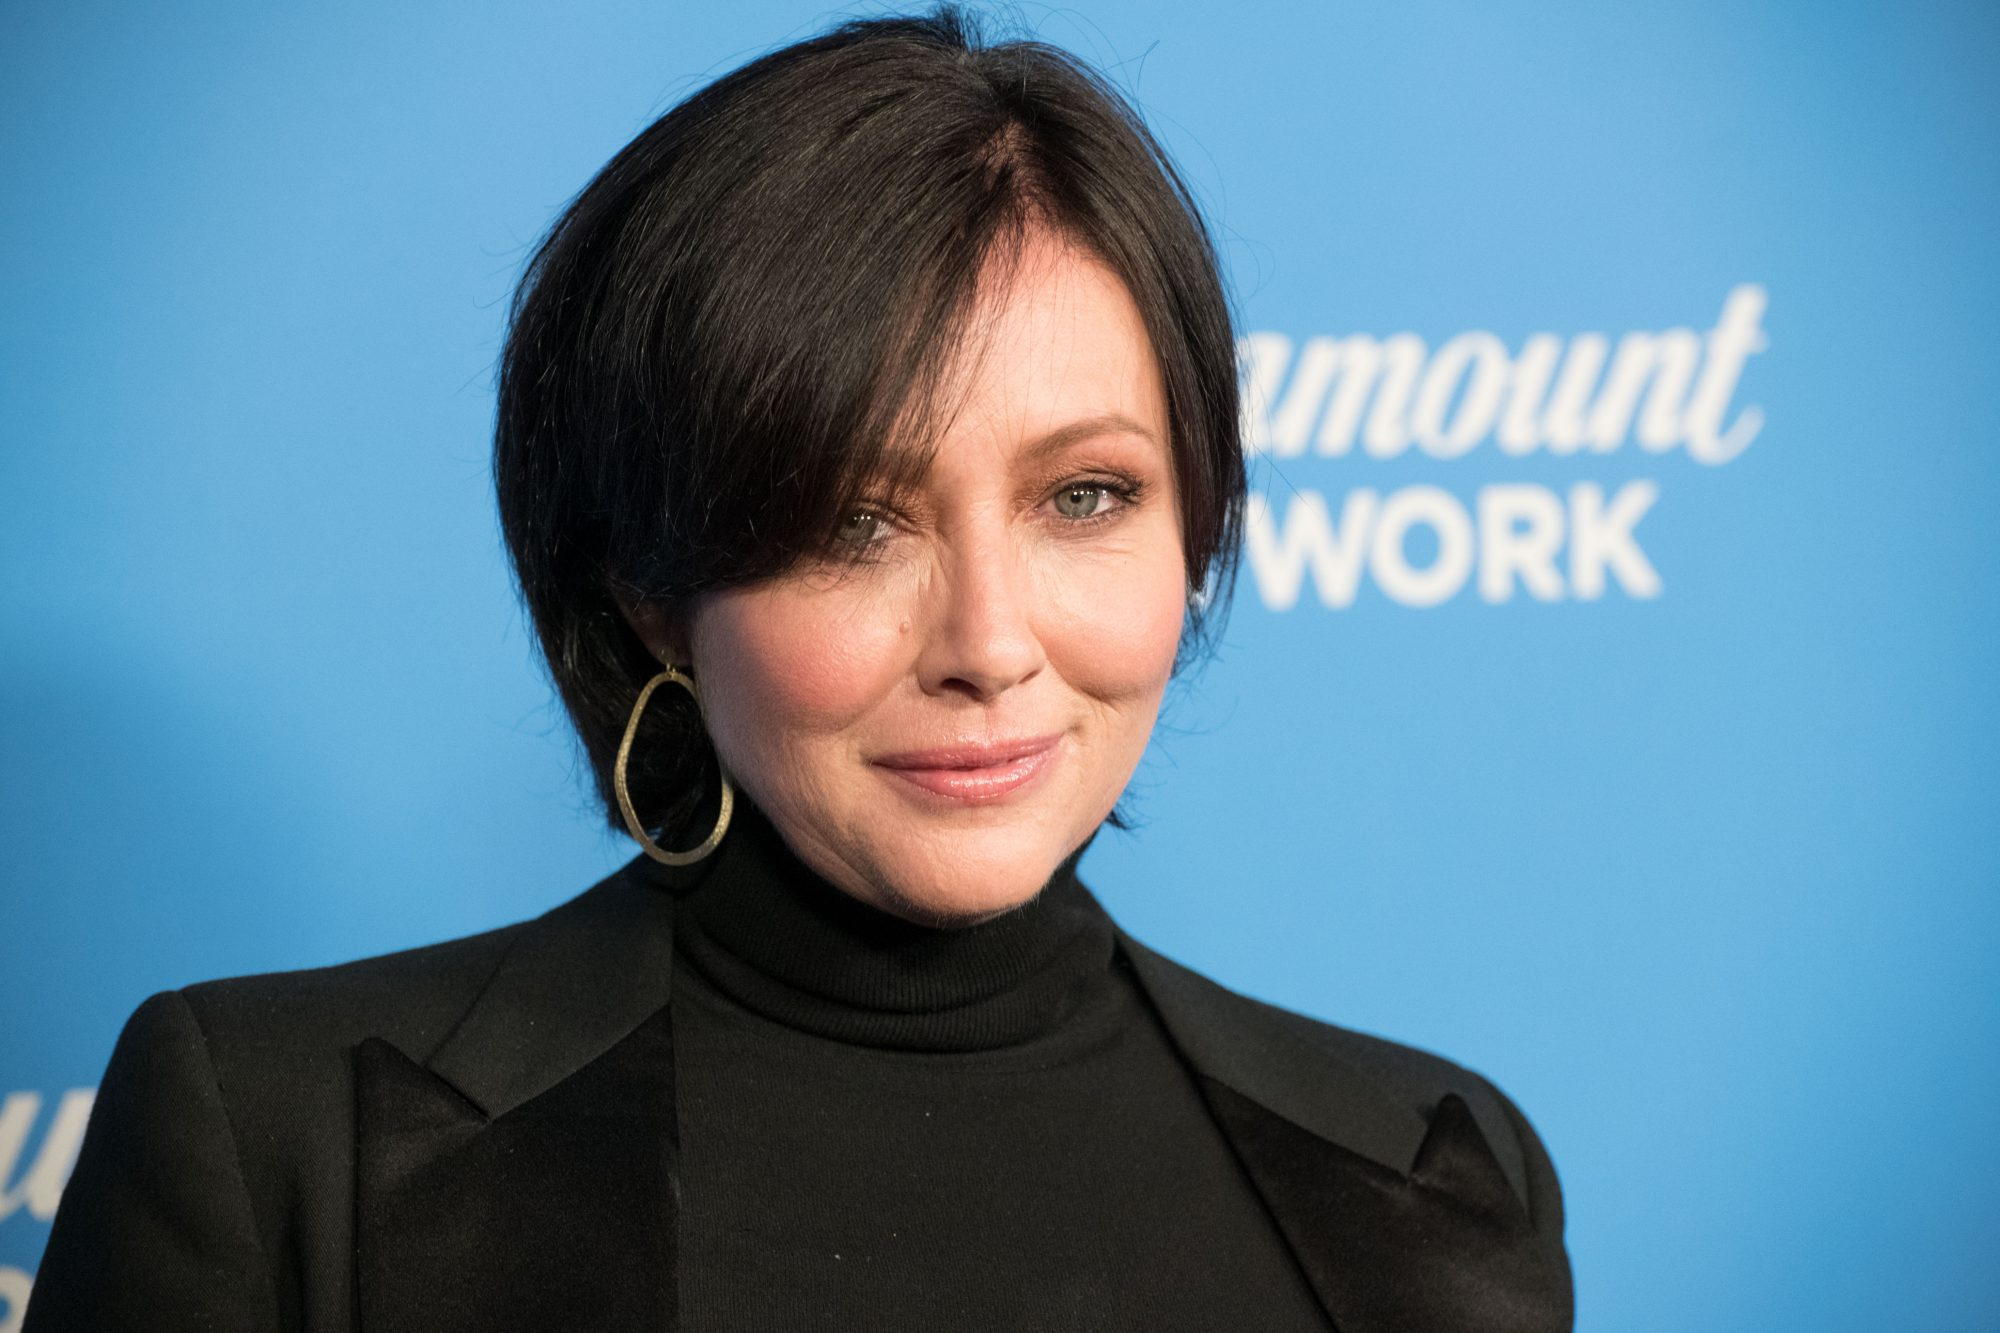 Shannen Doherty Is 'Staying Positive' After a Post-Cancer Tumor Scan Came Back 'Elevated'